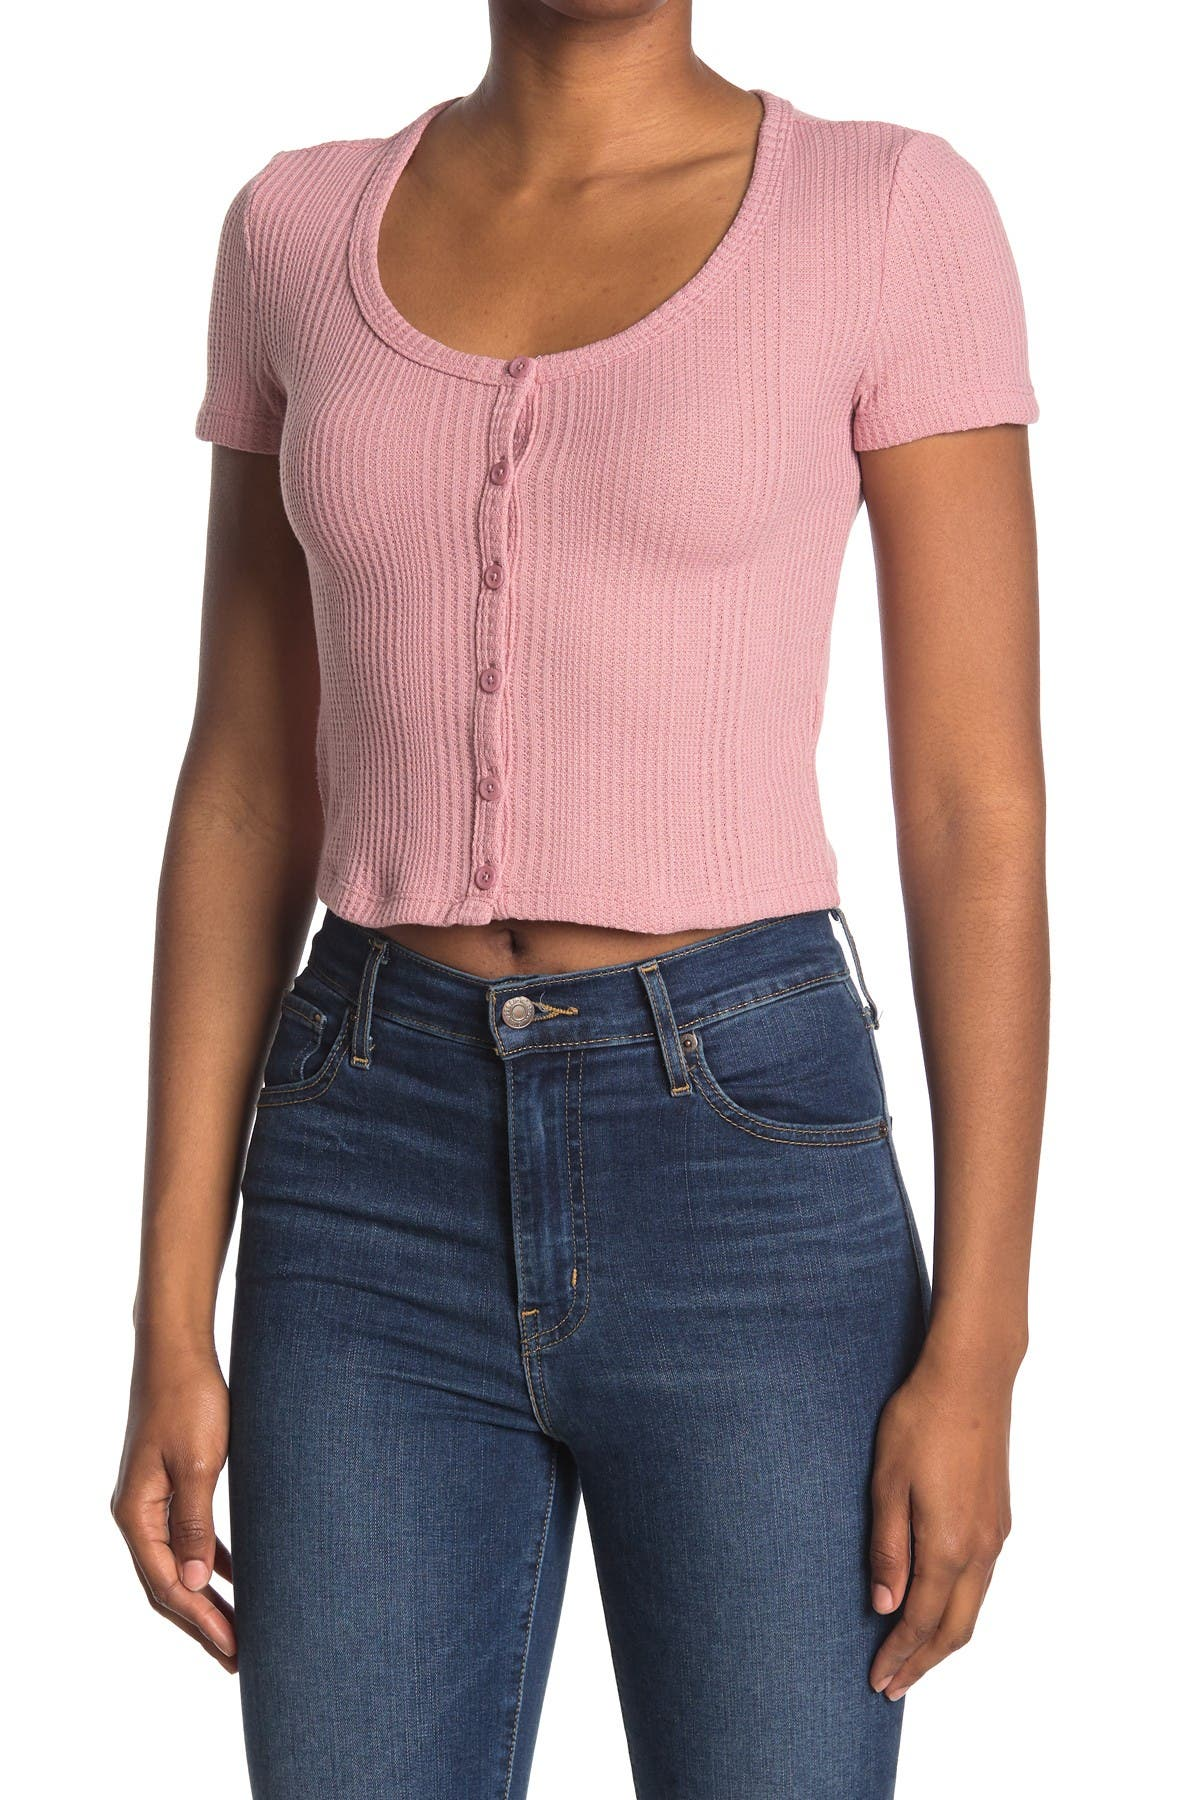 Image of Elodie Waffle Knit Short Sleeve Button-Up Crop Top